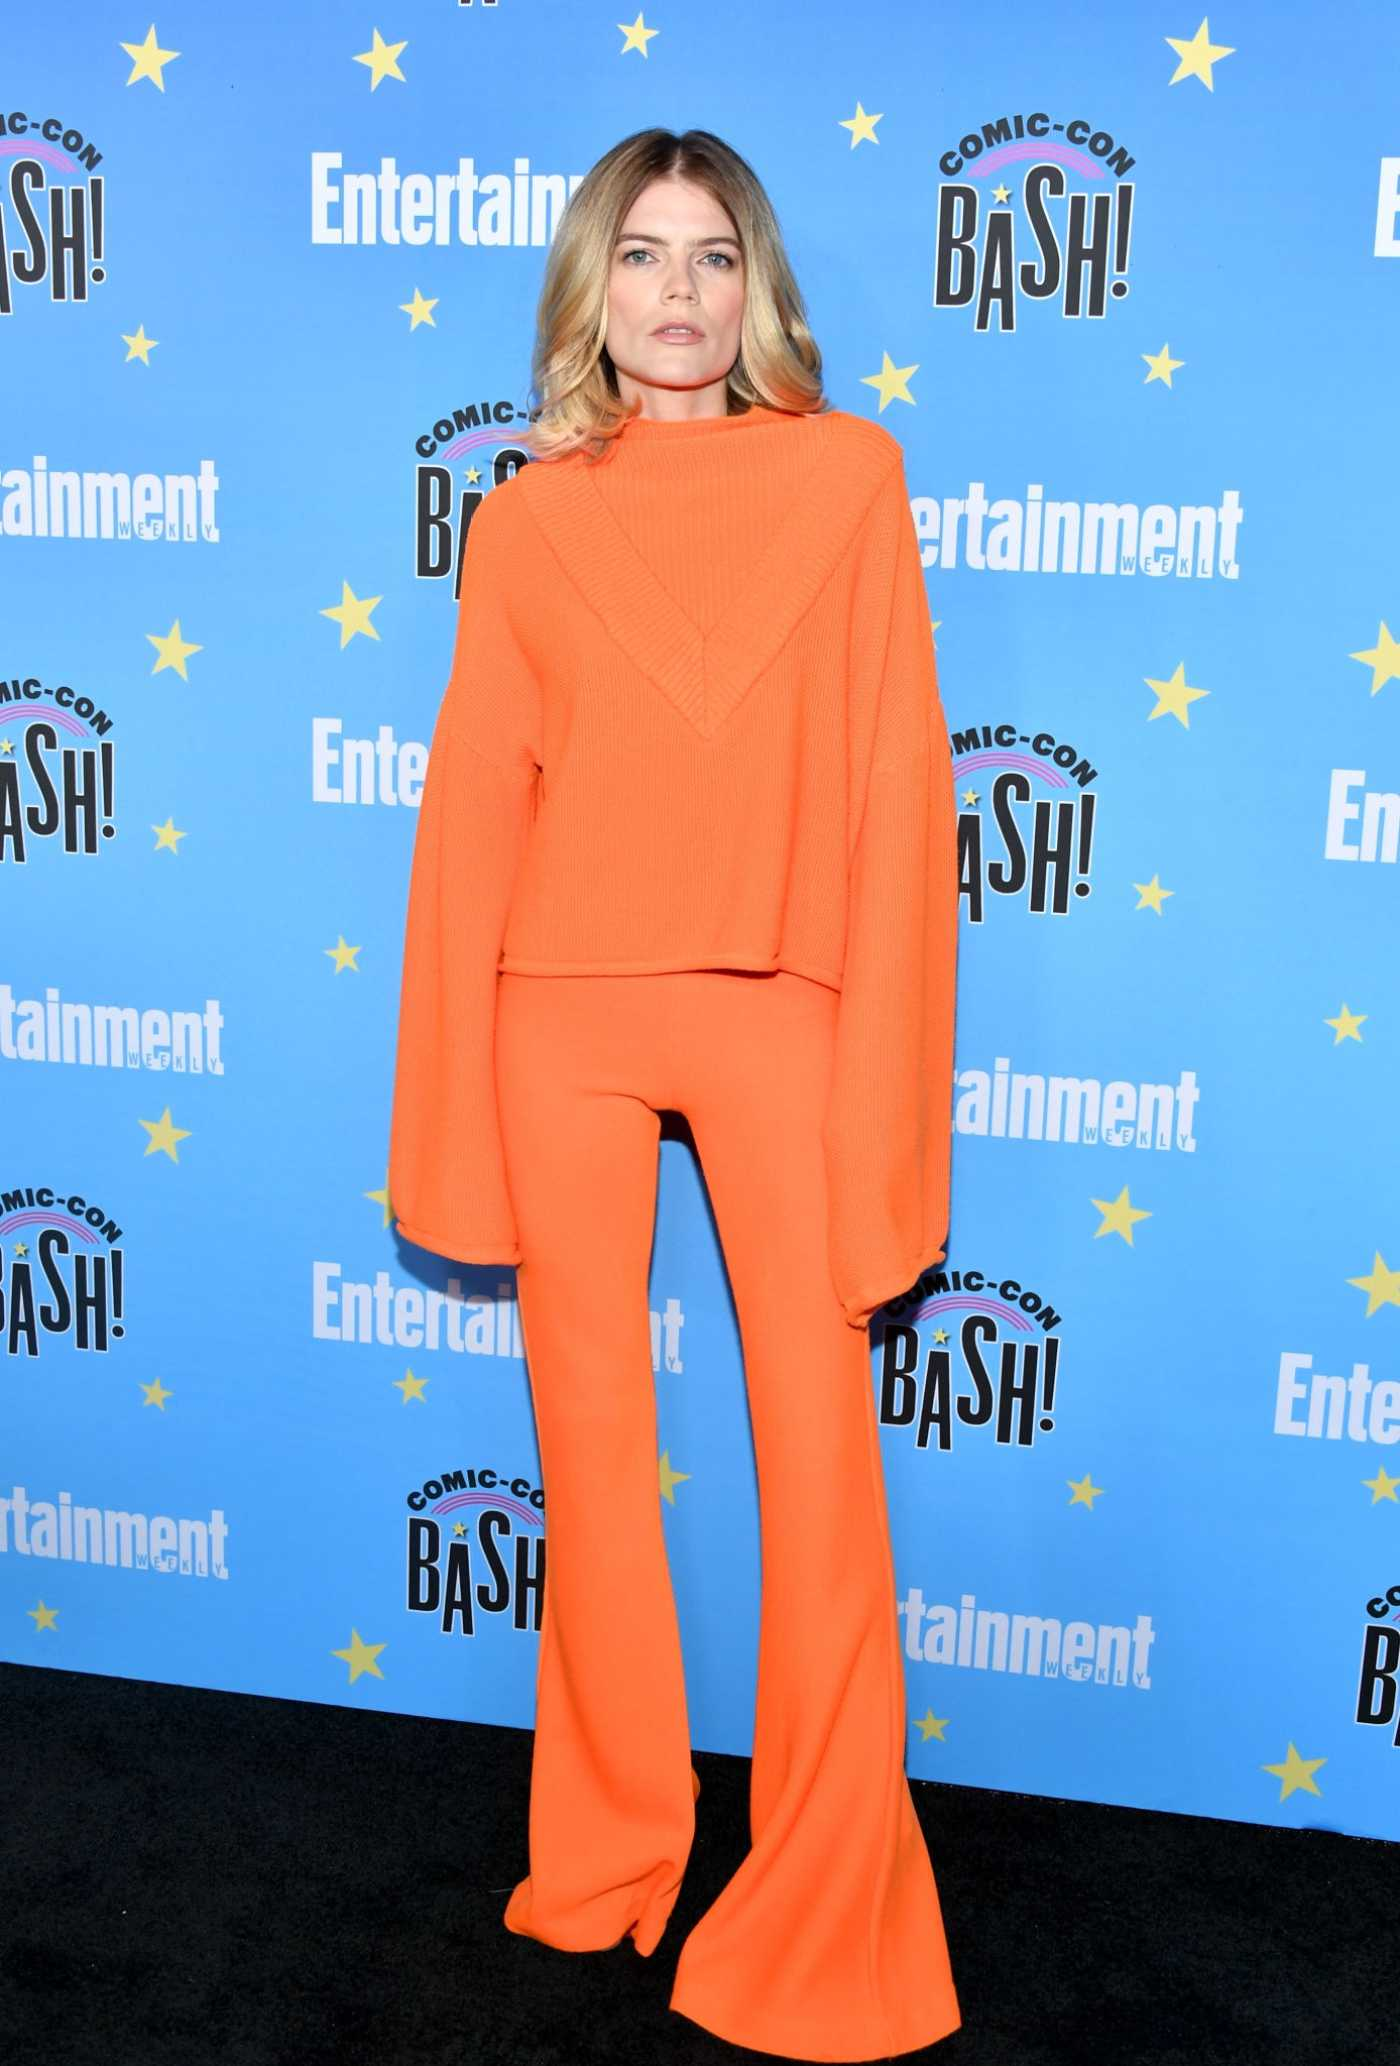 Emma Greenwell Attends Entertainment Weekly's Comic-Con Bash in San Diego 07/20/2019